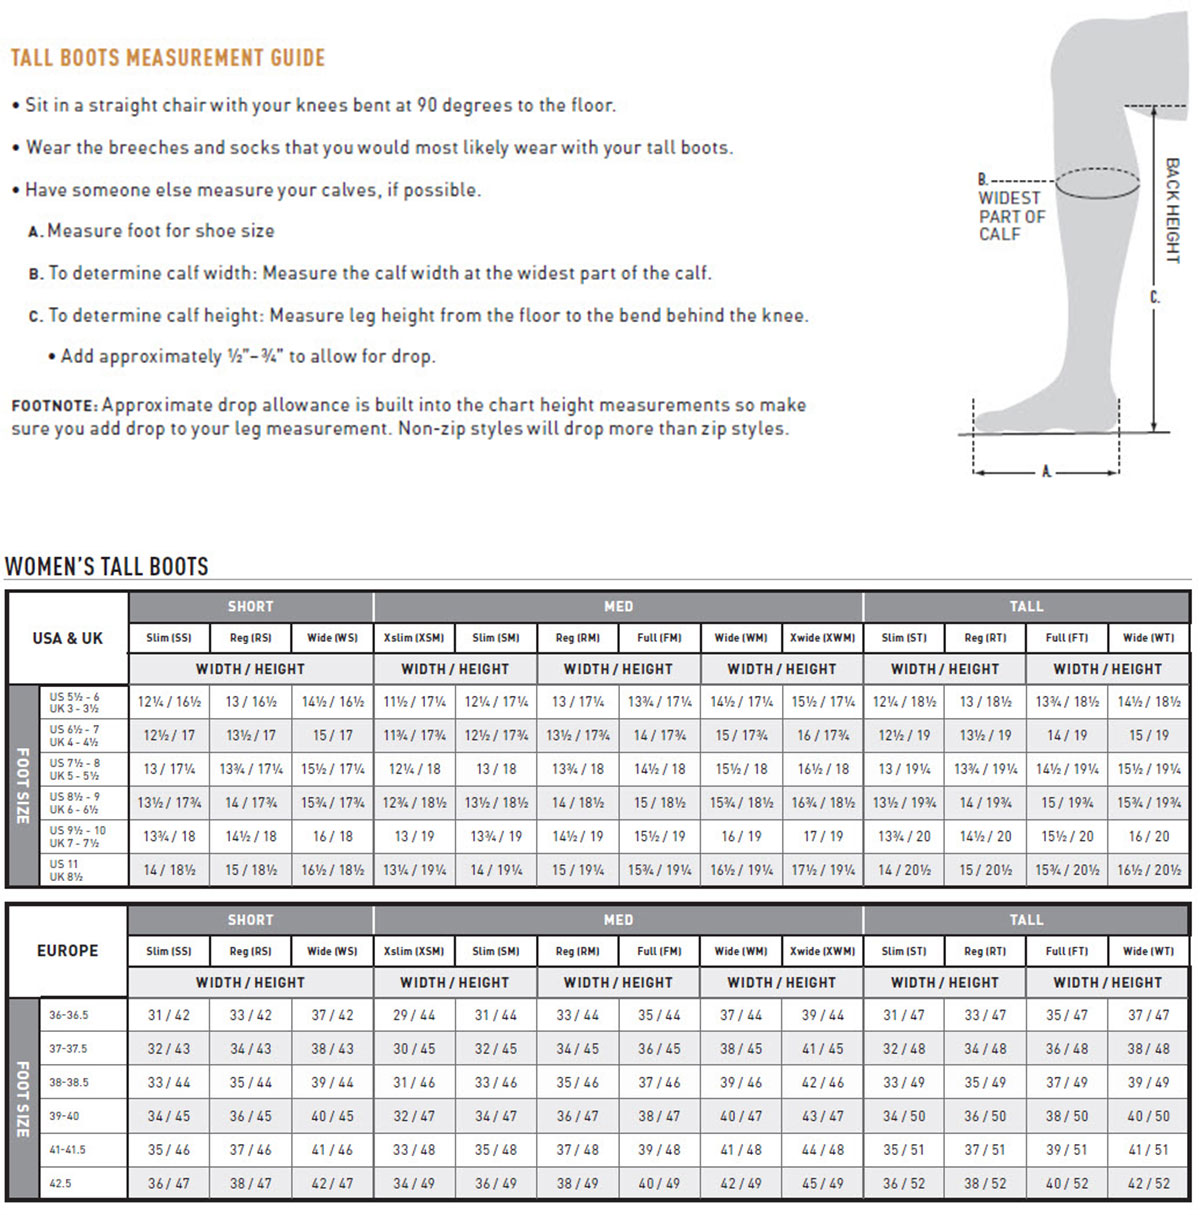 Ariat Ladies' Tall Boot Sizing